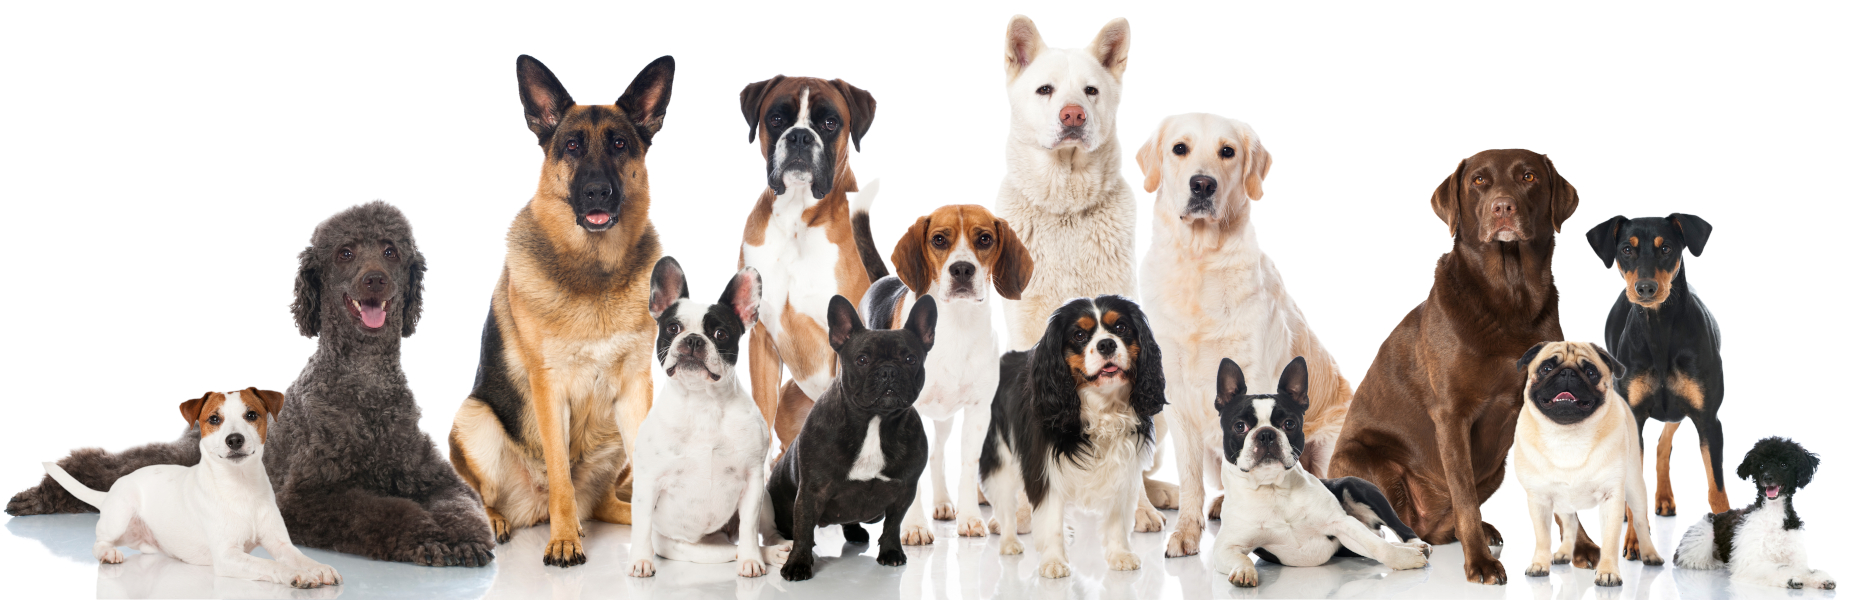 Group of multiple dogs of different breeds and coat colors